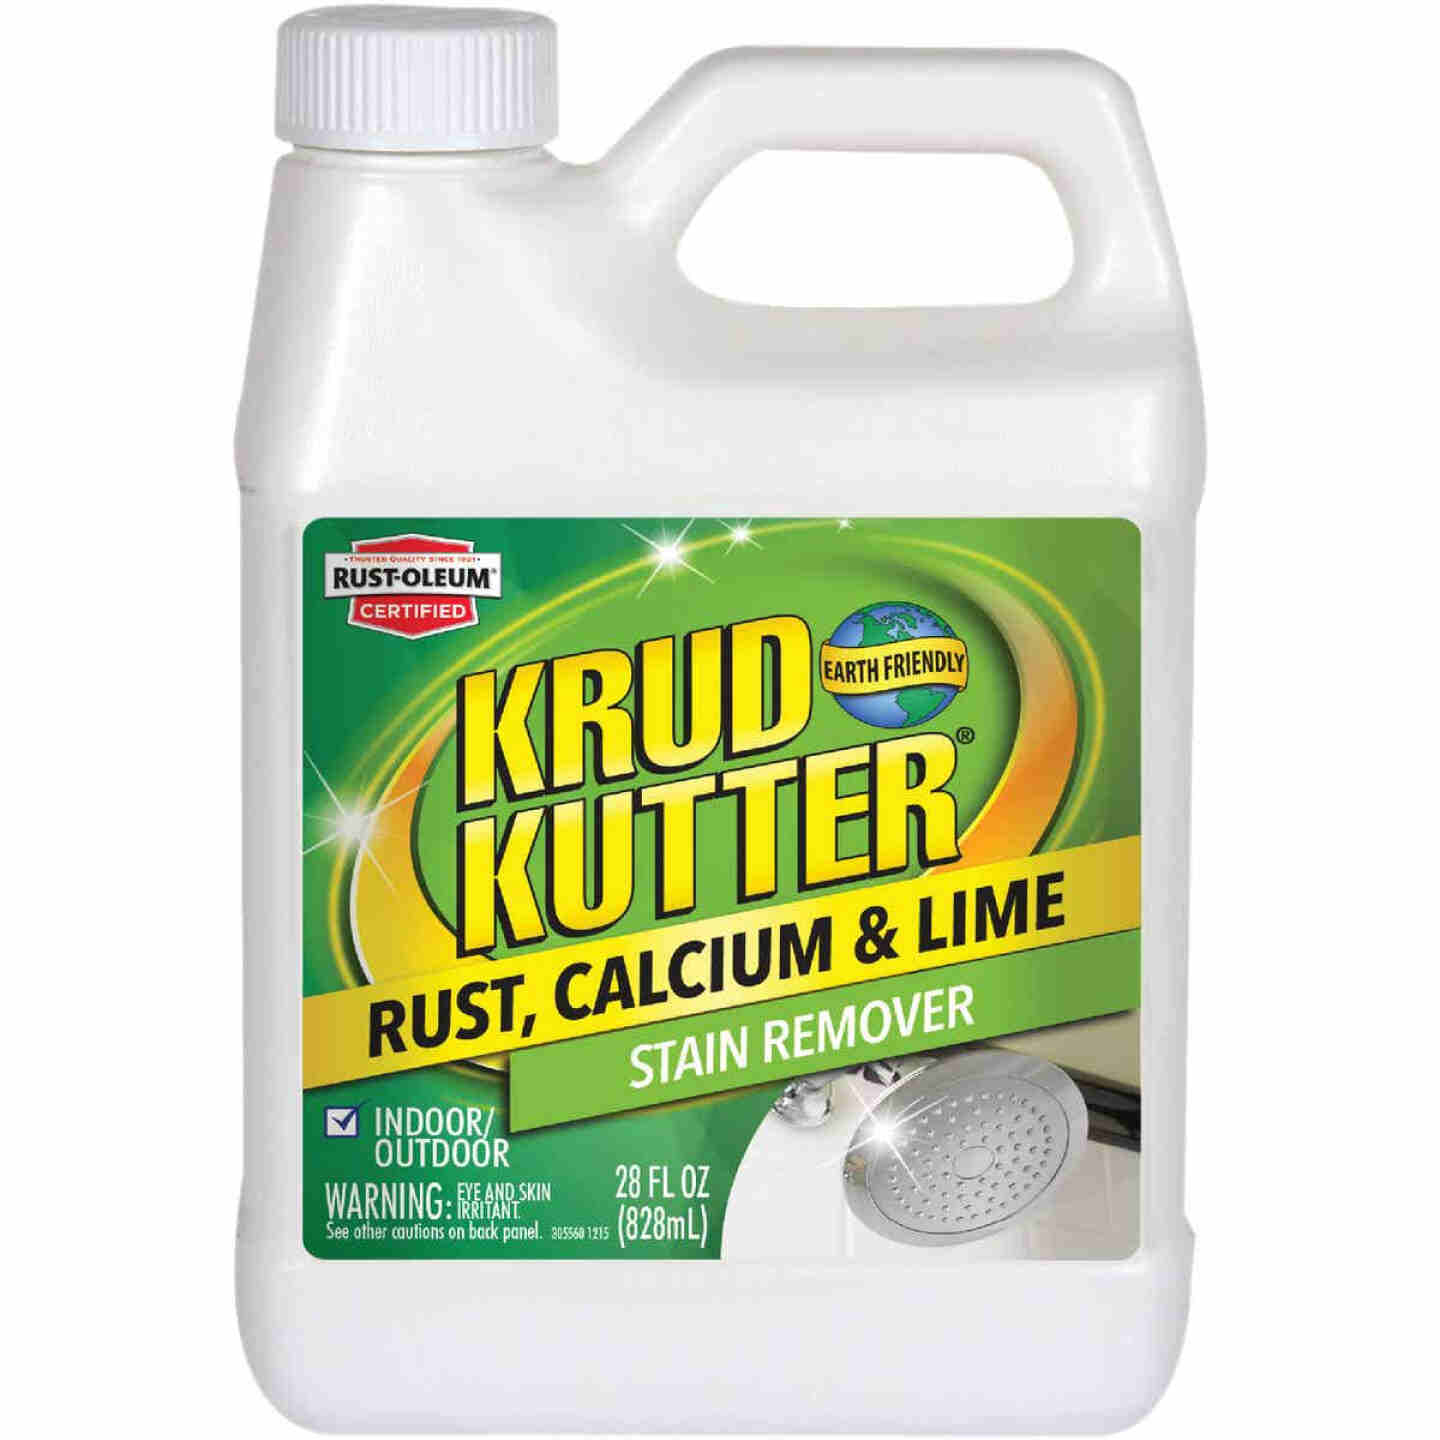 Krud Kutter 28 Oz. Rust, Calcium & Lime Stain Remover Image 1